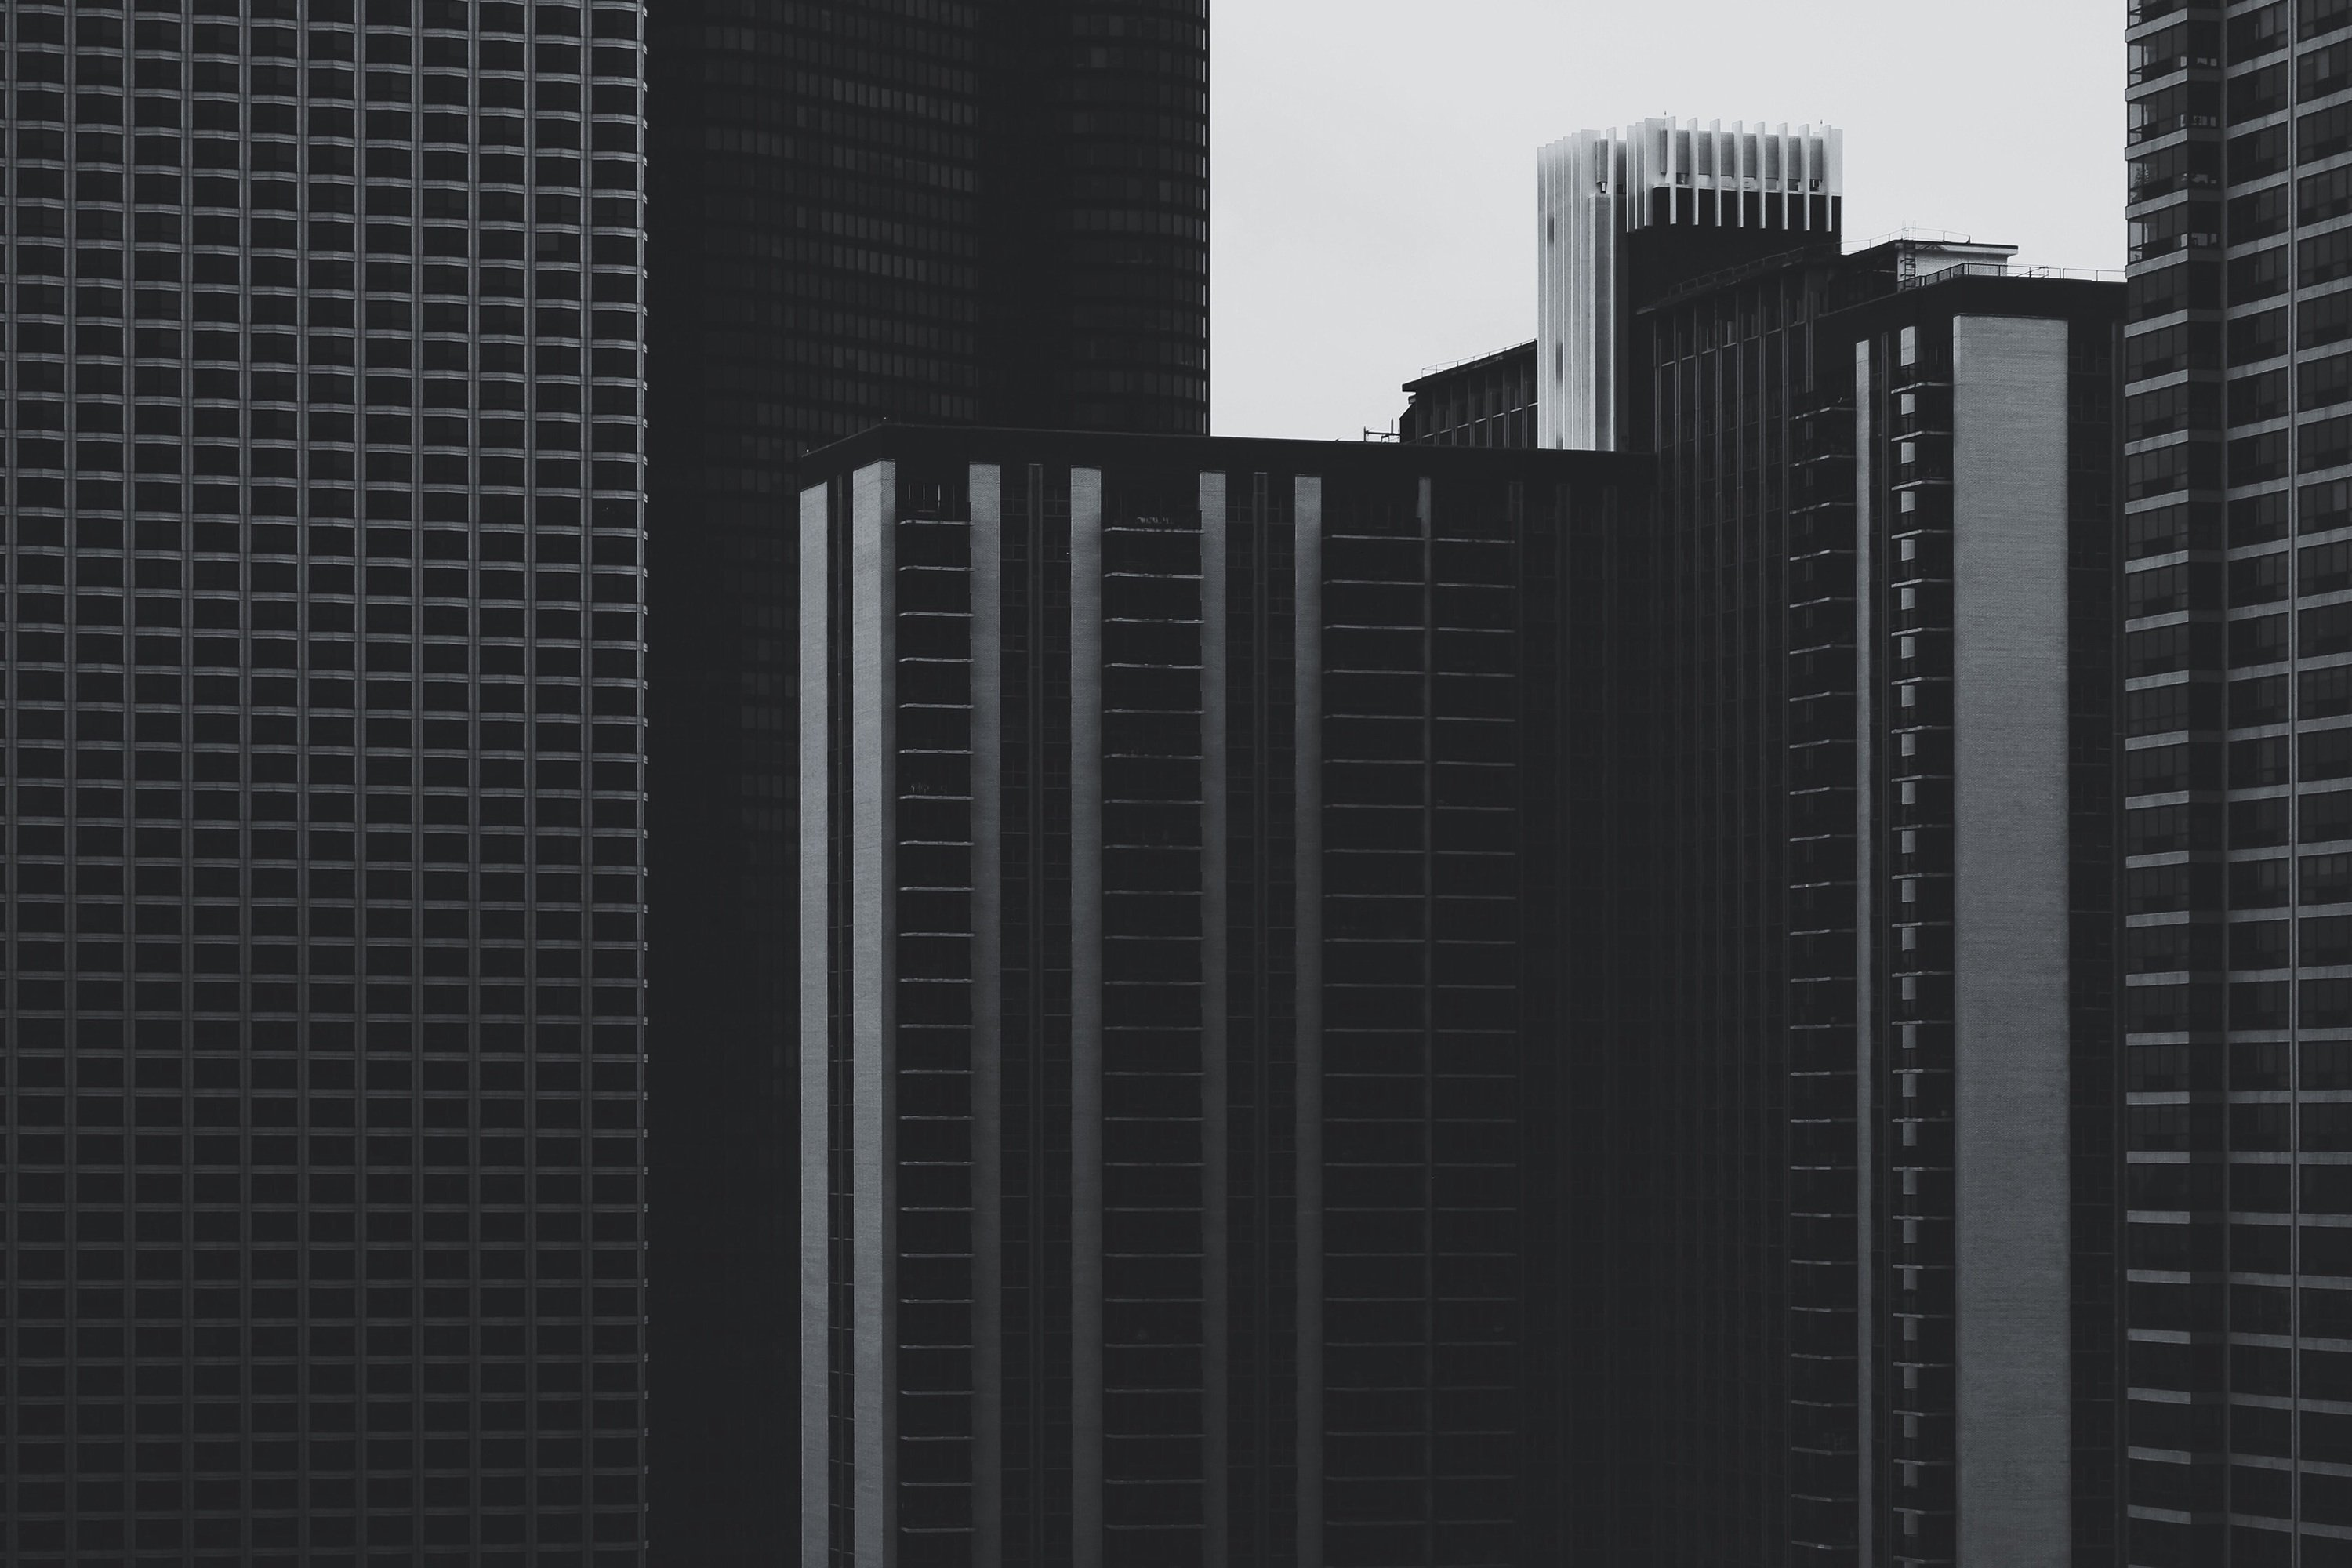 Skyscrapper-james-traf-unsplash